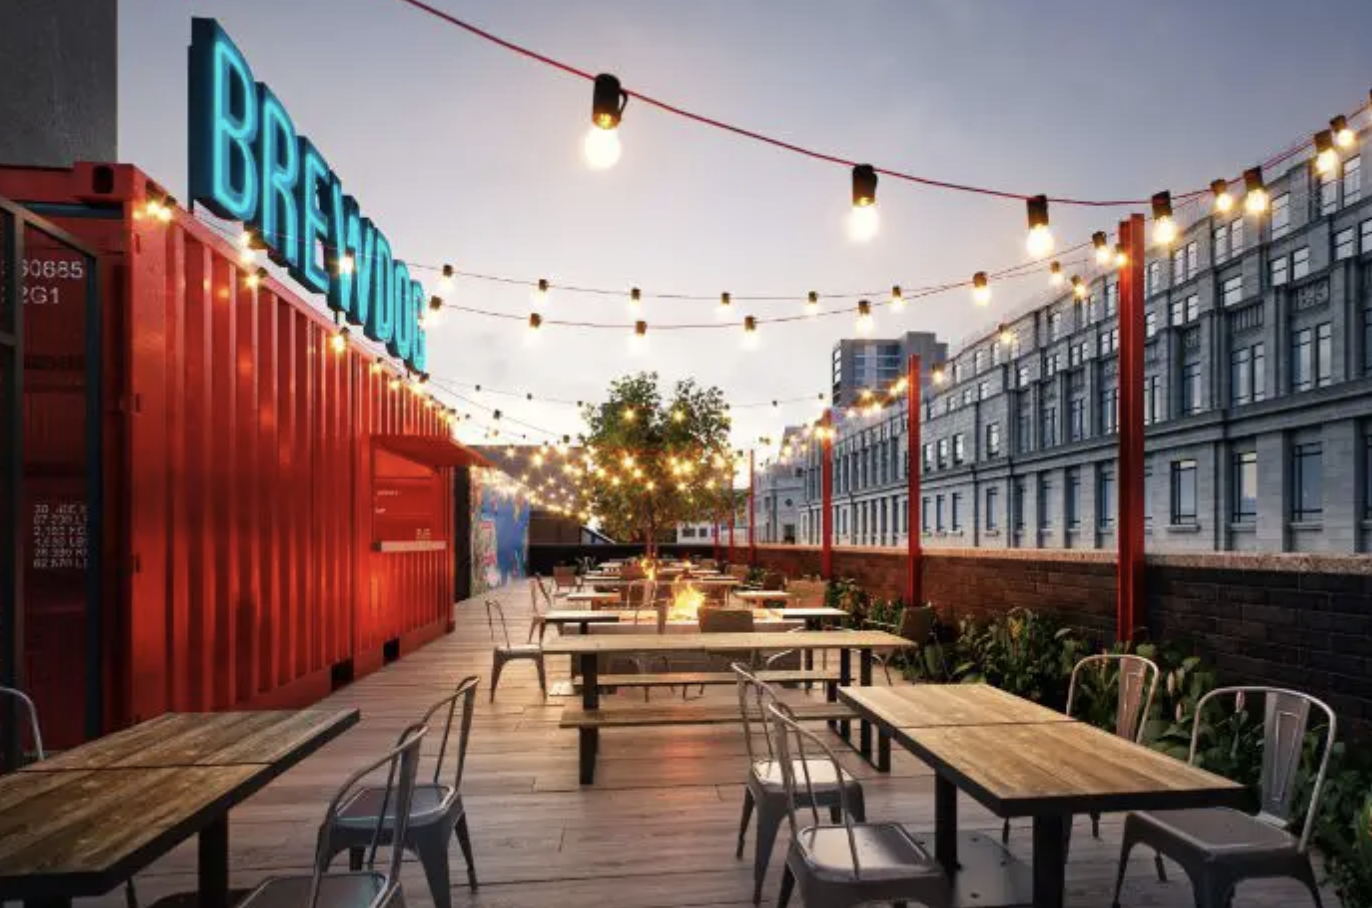 Manchester's BrewDog Hotel could open in summer after Council gives green light, The Manc